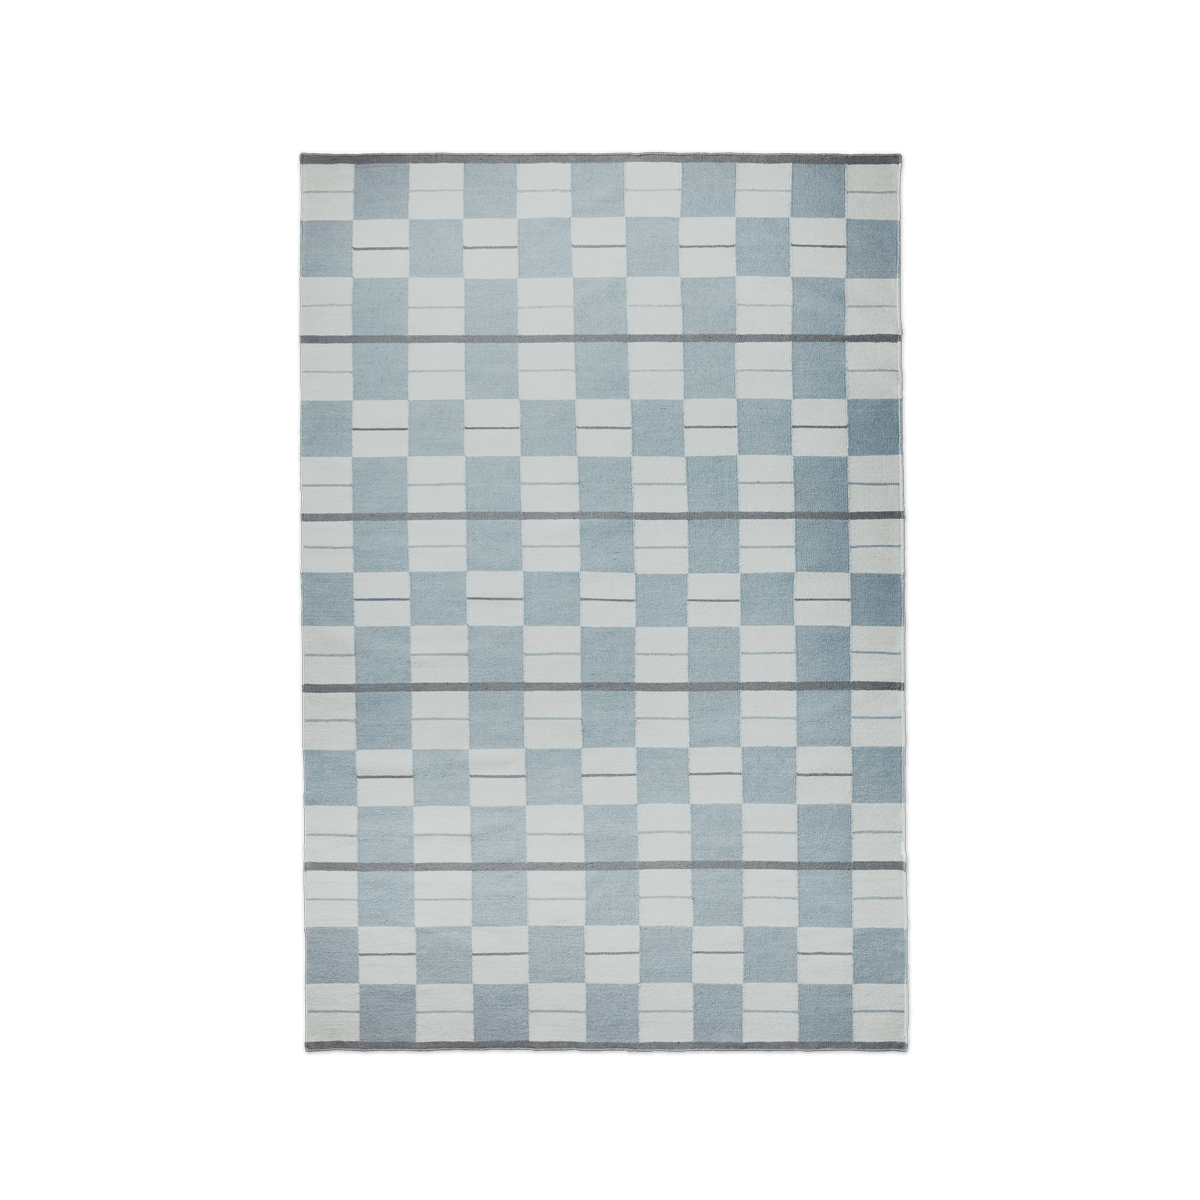 Product image of the flatweave rug Båstad in the color Blue. It is a patterned rug combining striped and squares in different blue hues.